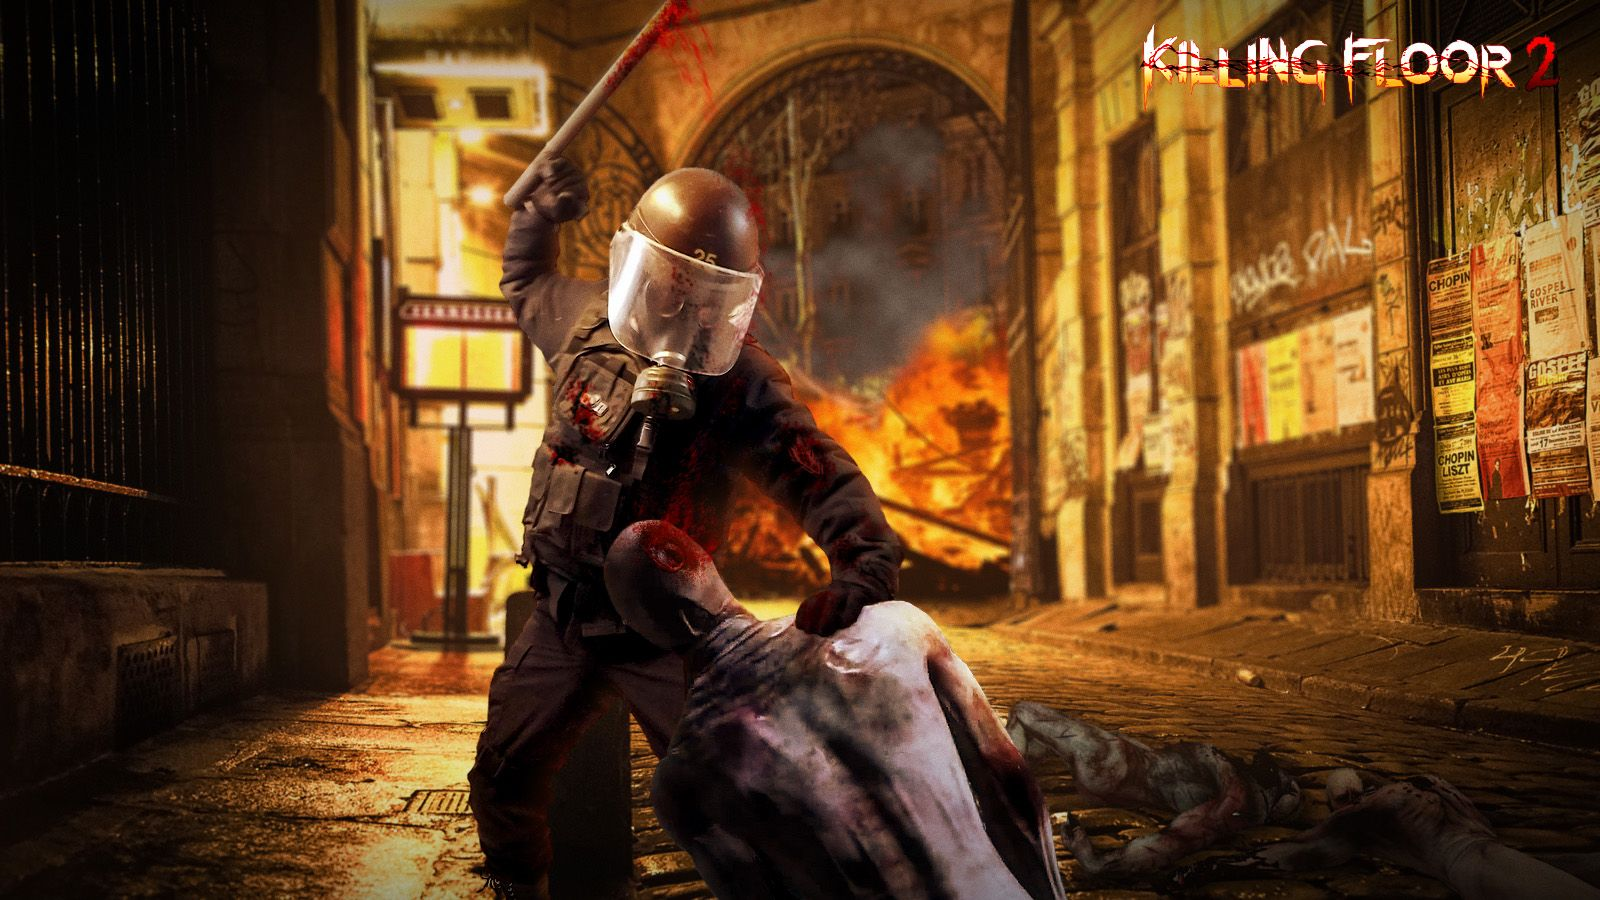 Pin En Killing Floor 2 Game